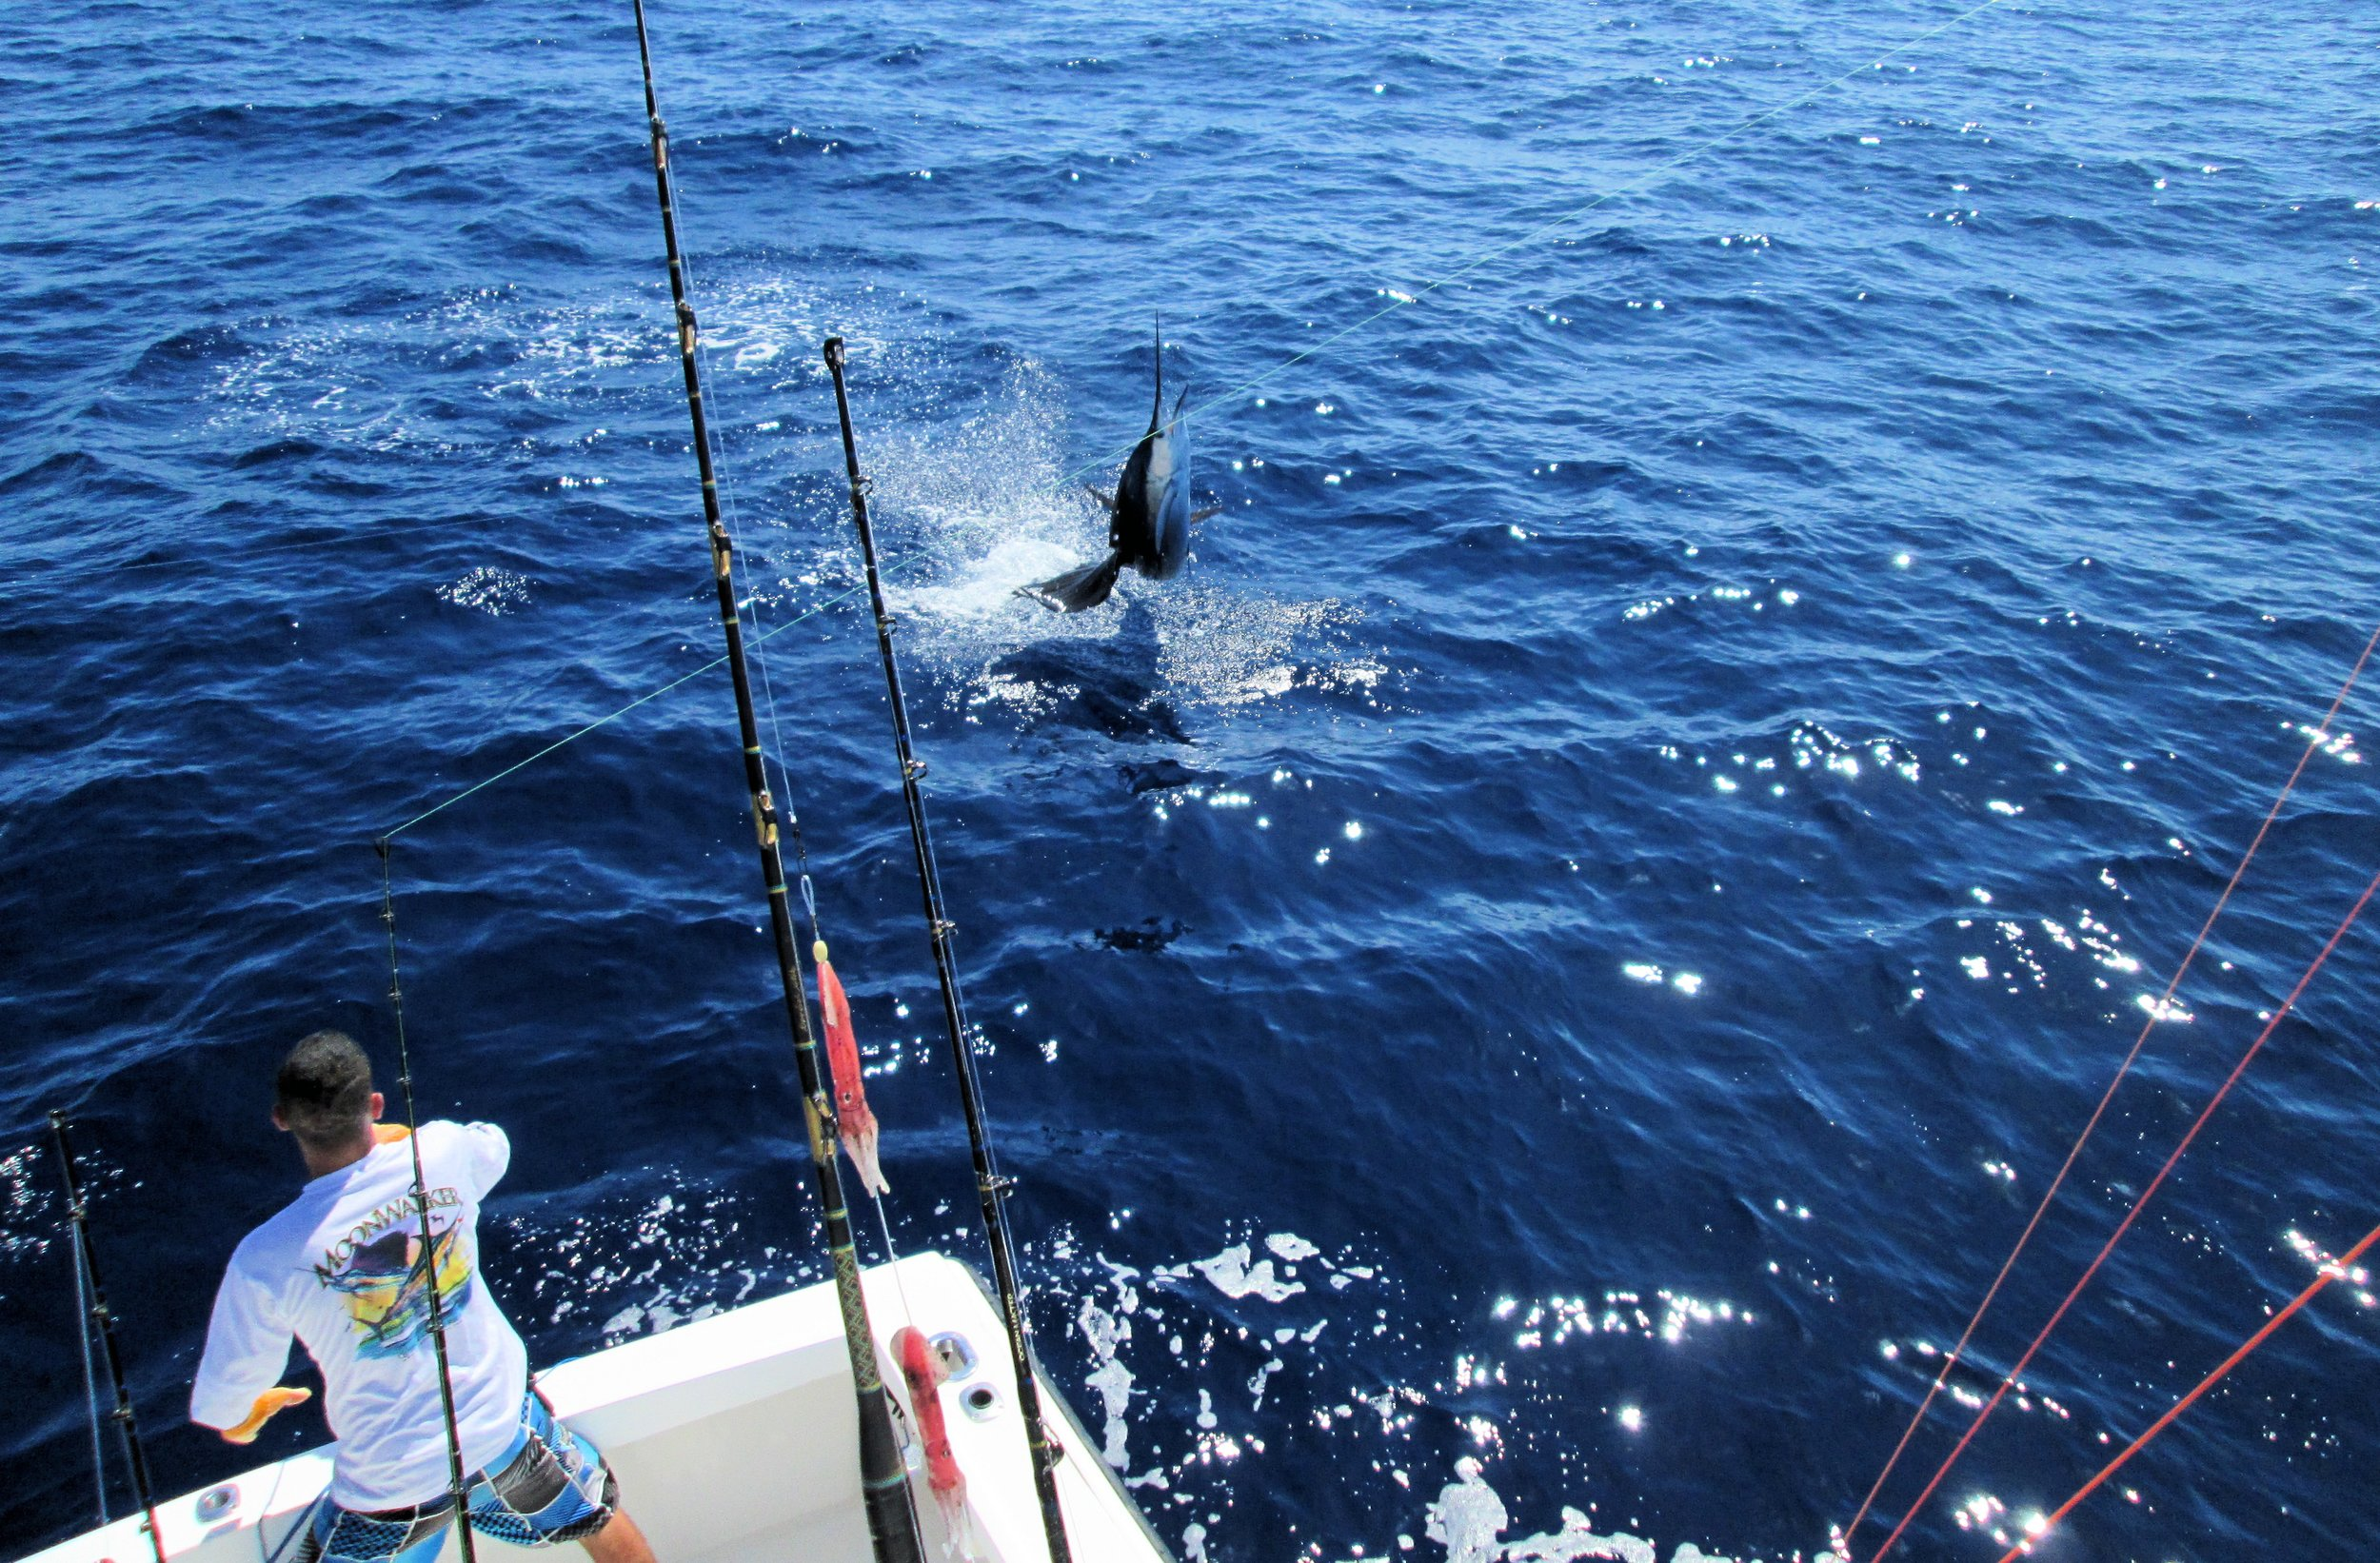 Chris Elken aboard the MoonWalker today released 1 Sailfish at 50 miles. The fleet all experiencing the same today. Far distance, low numbers.